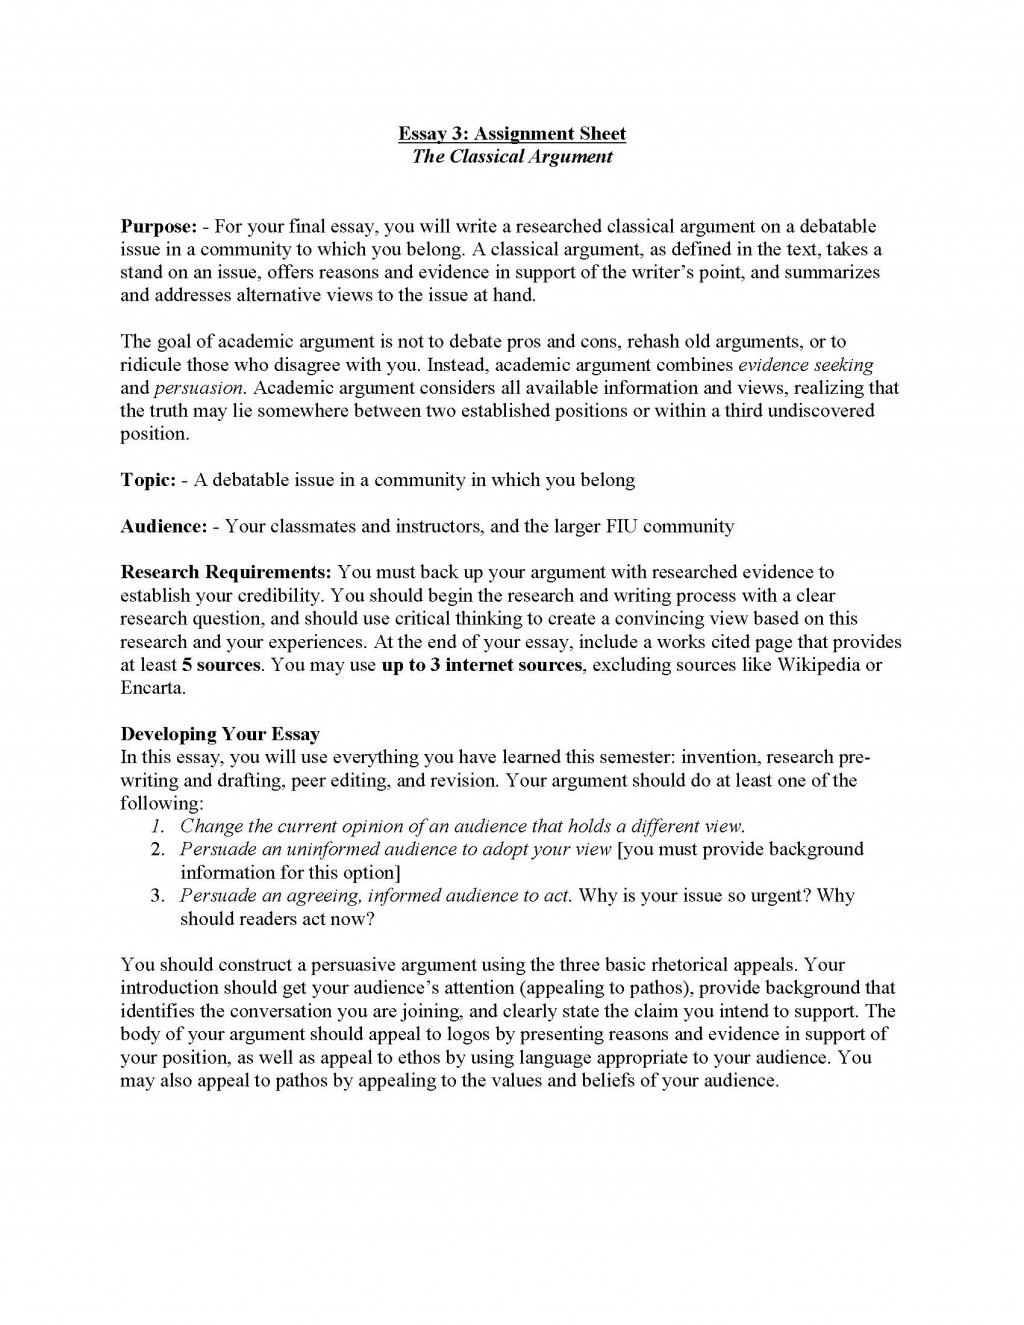 004 Essay Example Classical Argument Unit Assignment Page 1 About My Archaicawful Life As A Student Experience Of University And Peer Pressure Large